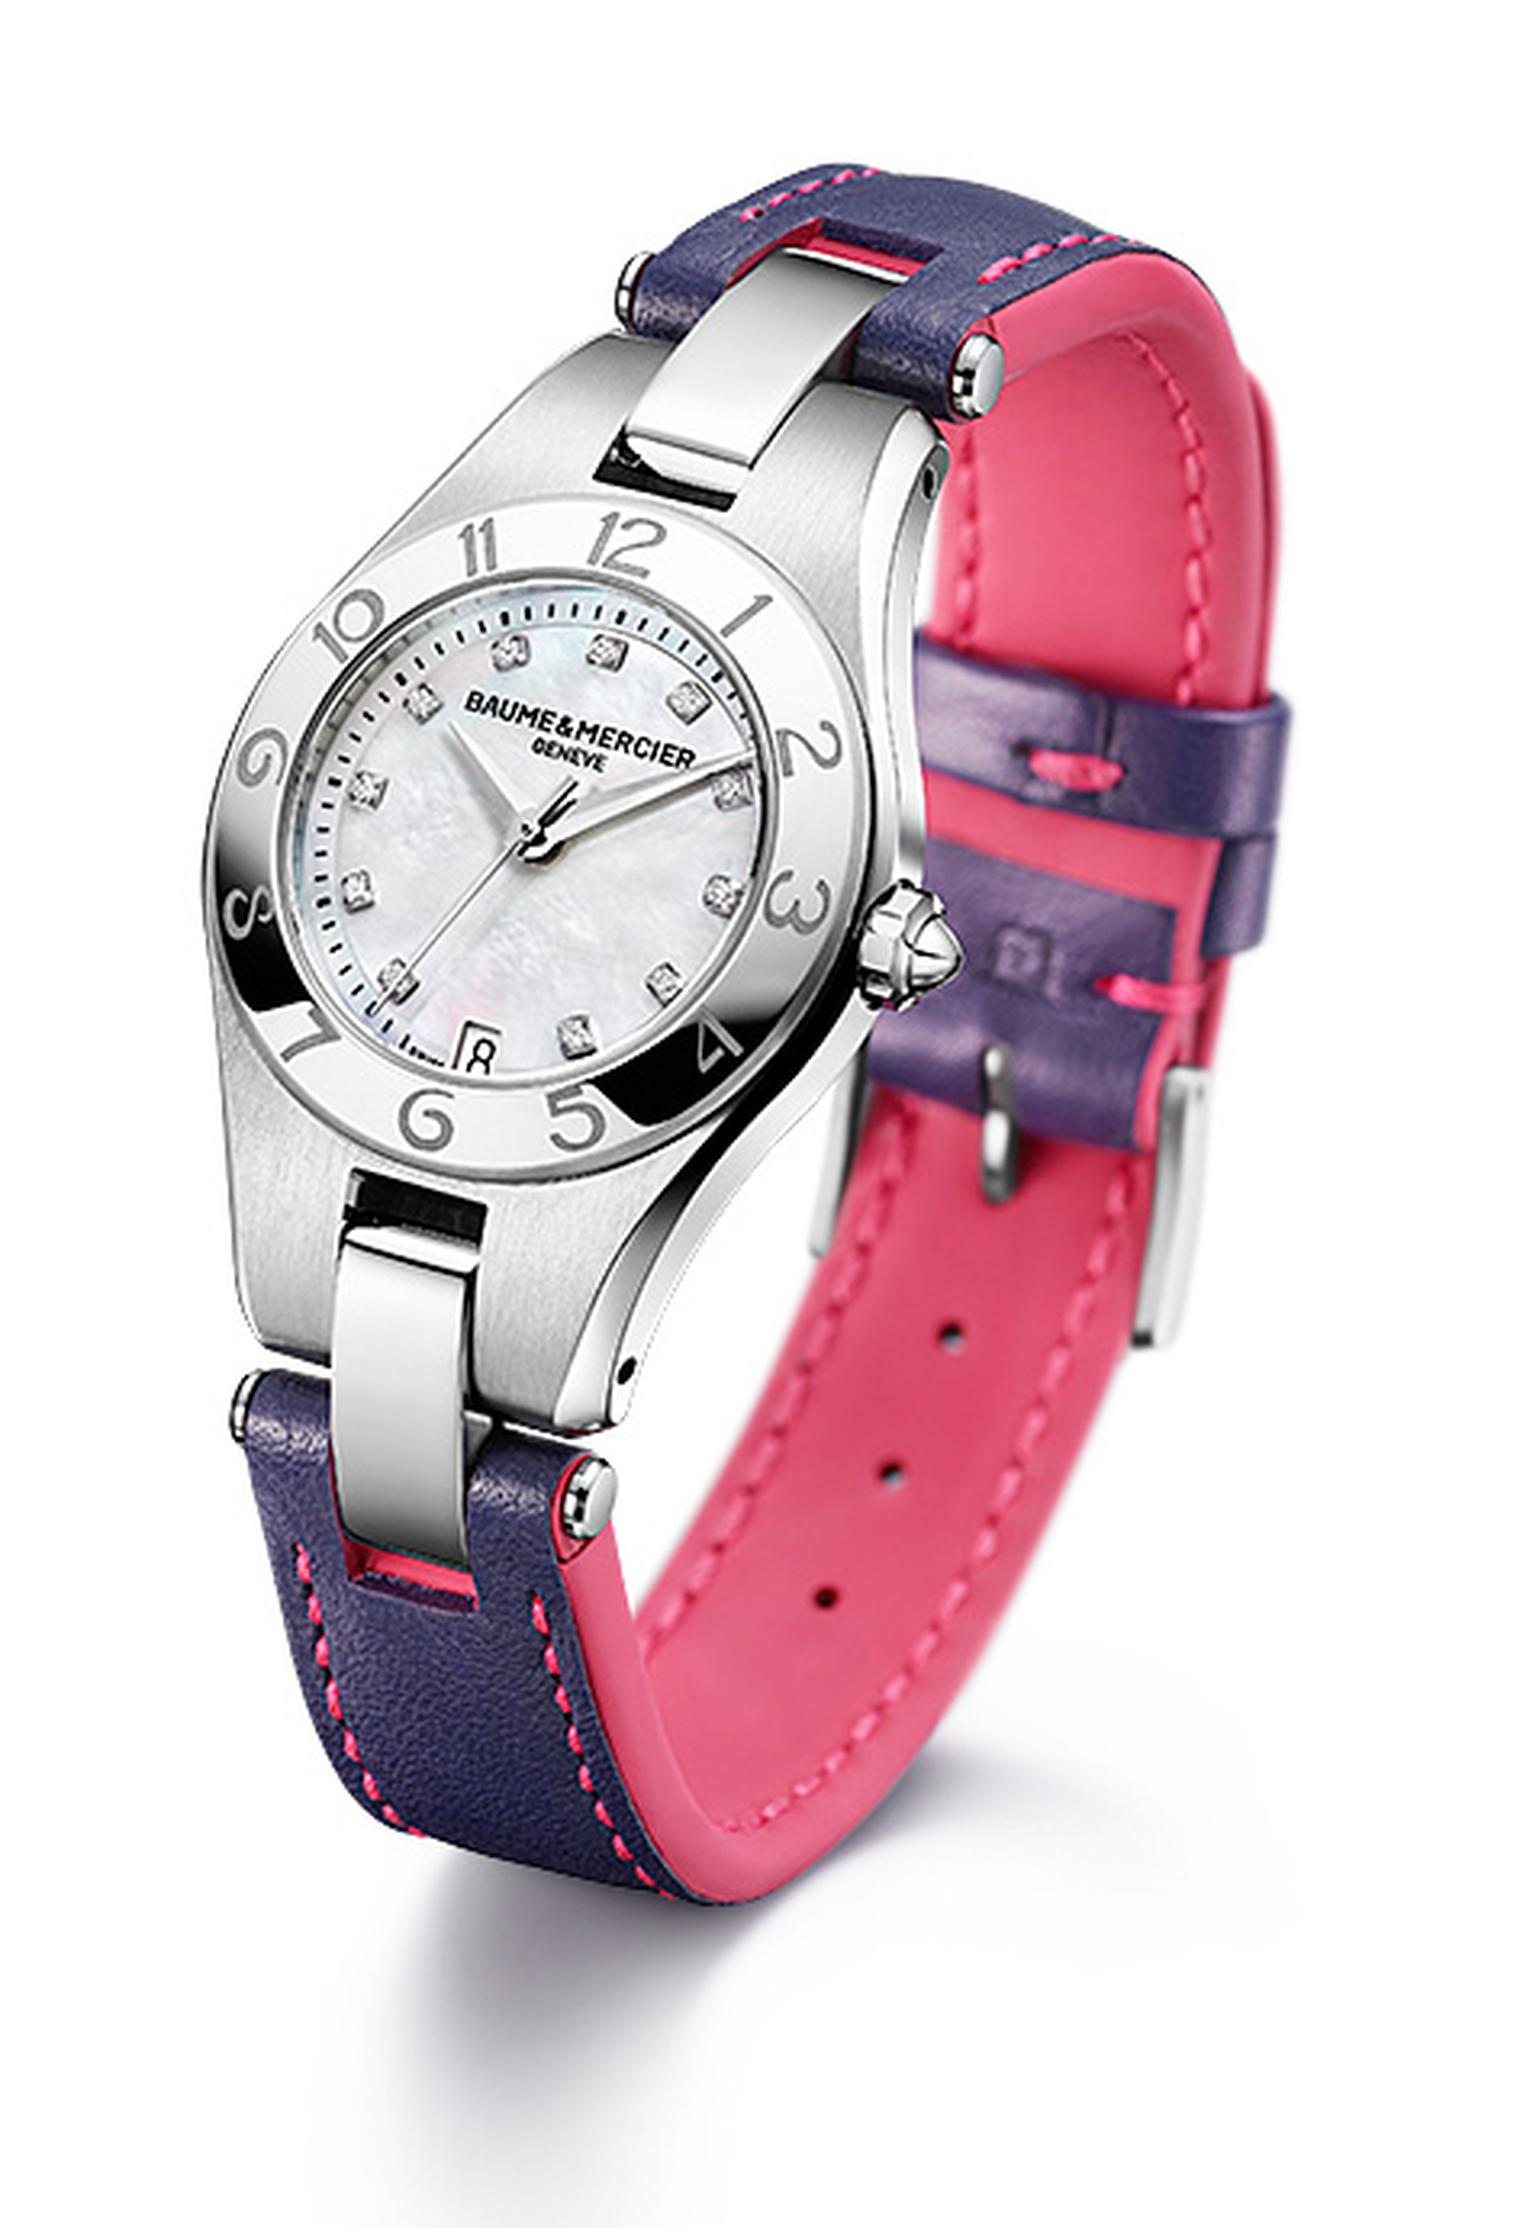 Baume & Mercier Linea with mauve and pink spring/summer 2012 strap